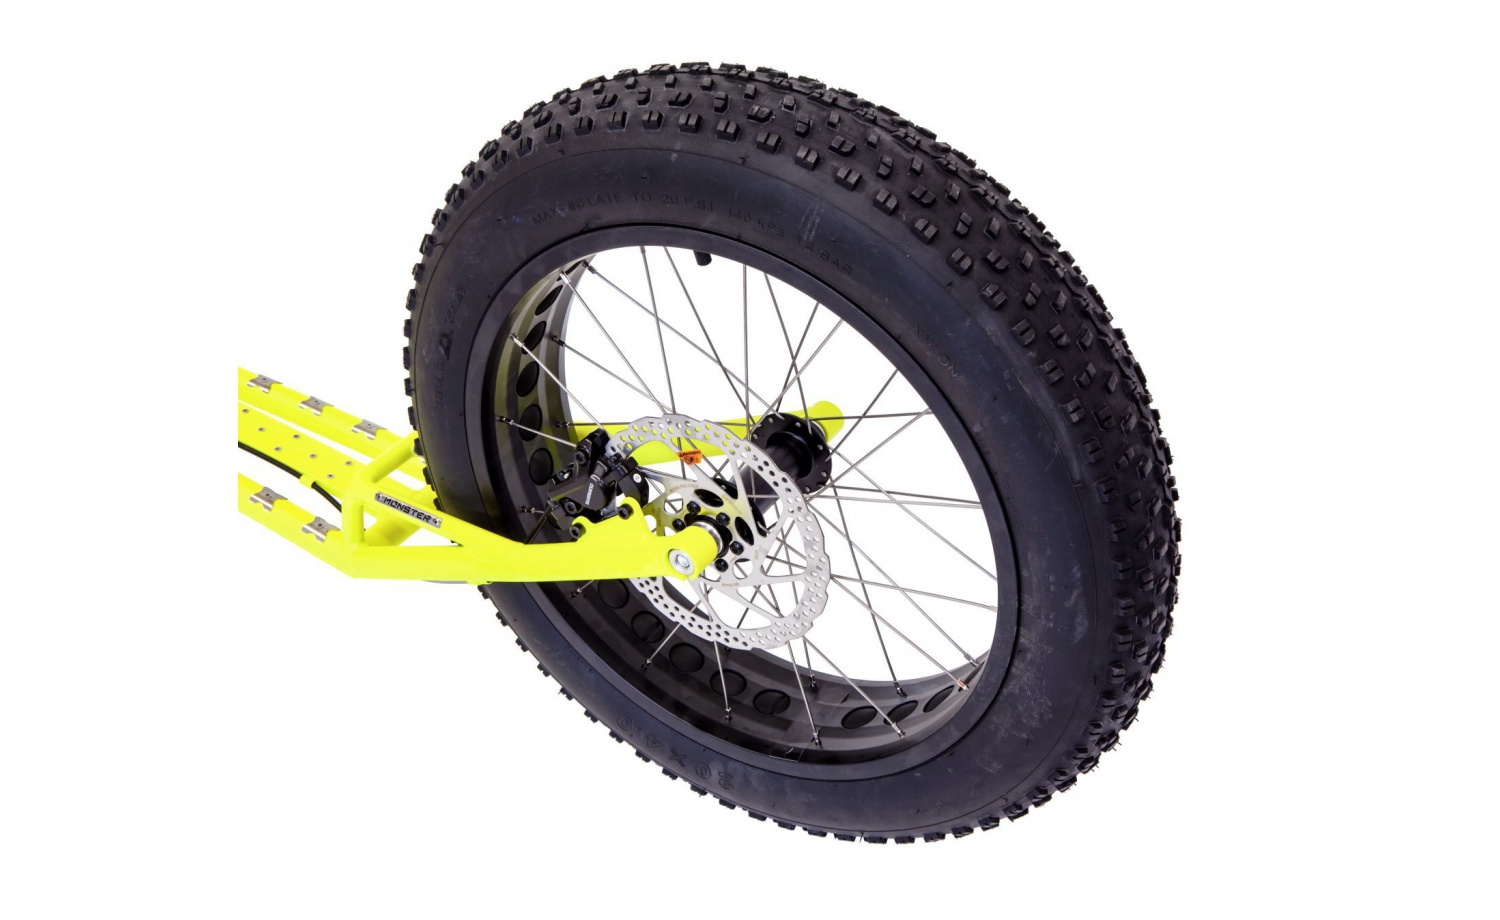 Tretroller KOSTKA MONSTER MAX (G5)